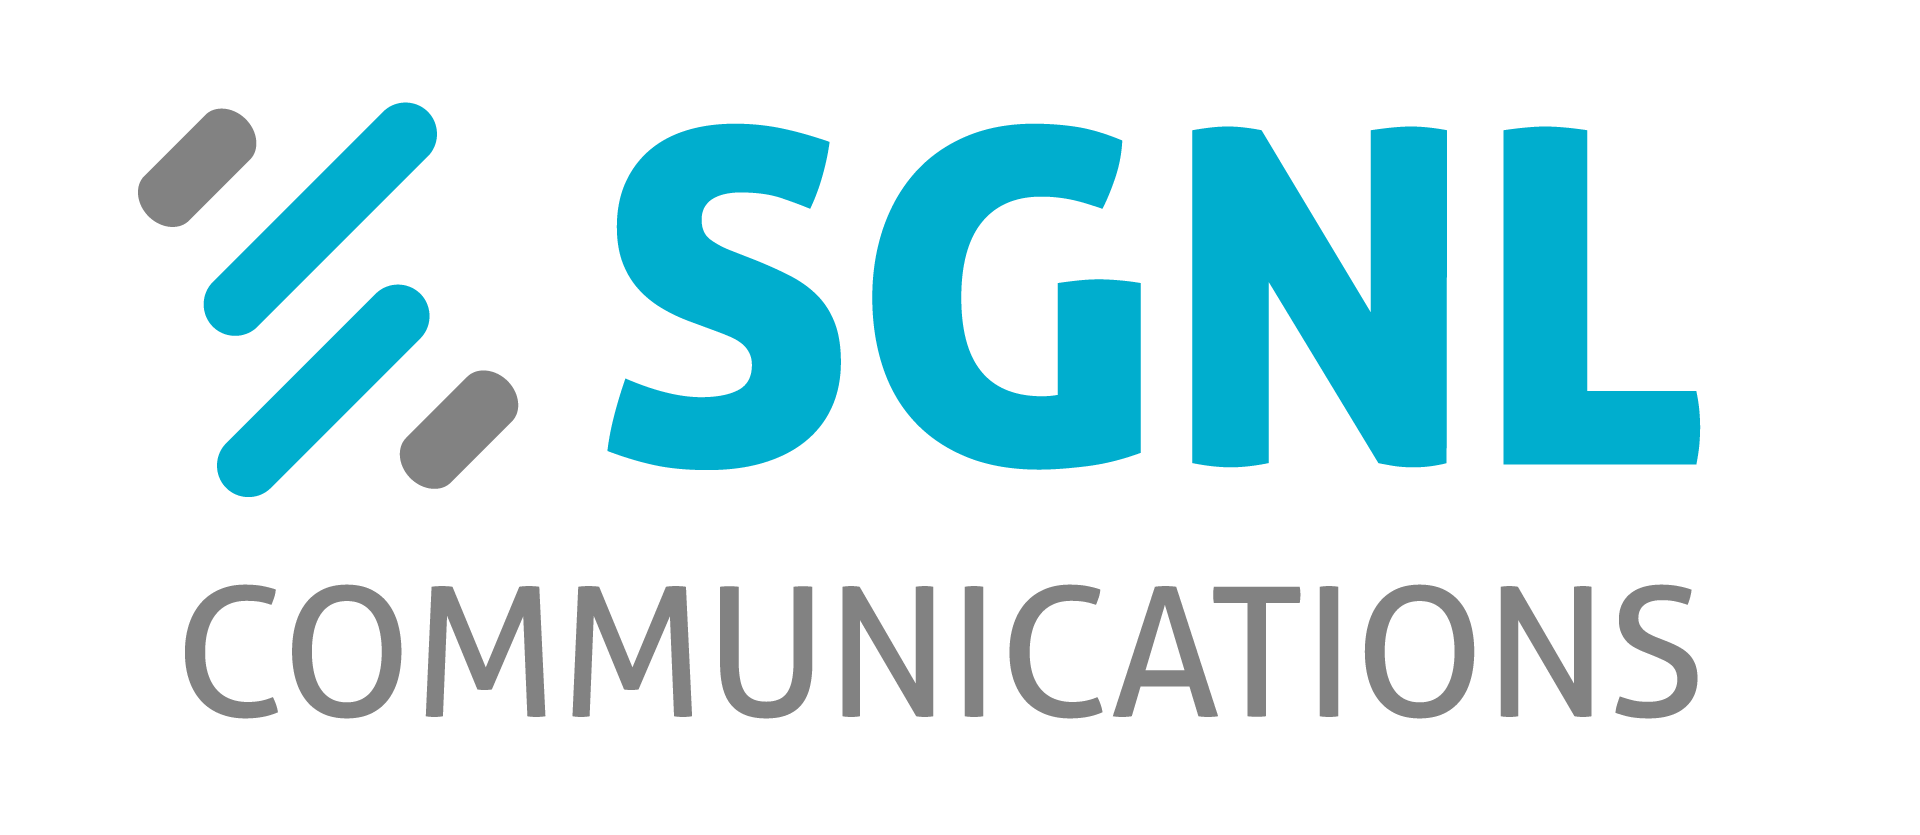 SGNL Communications